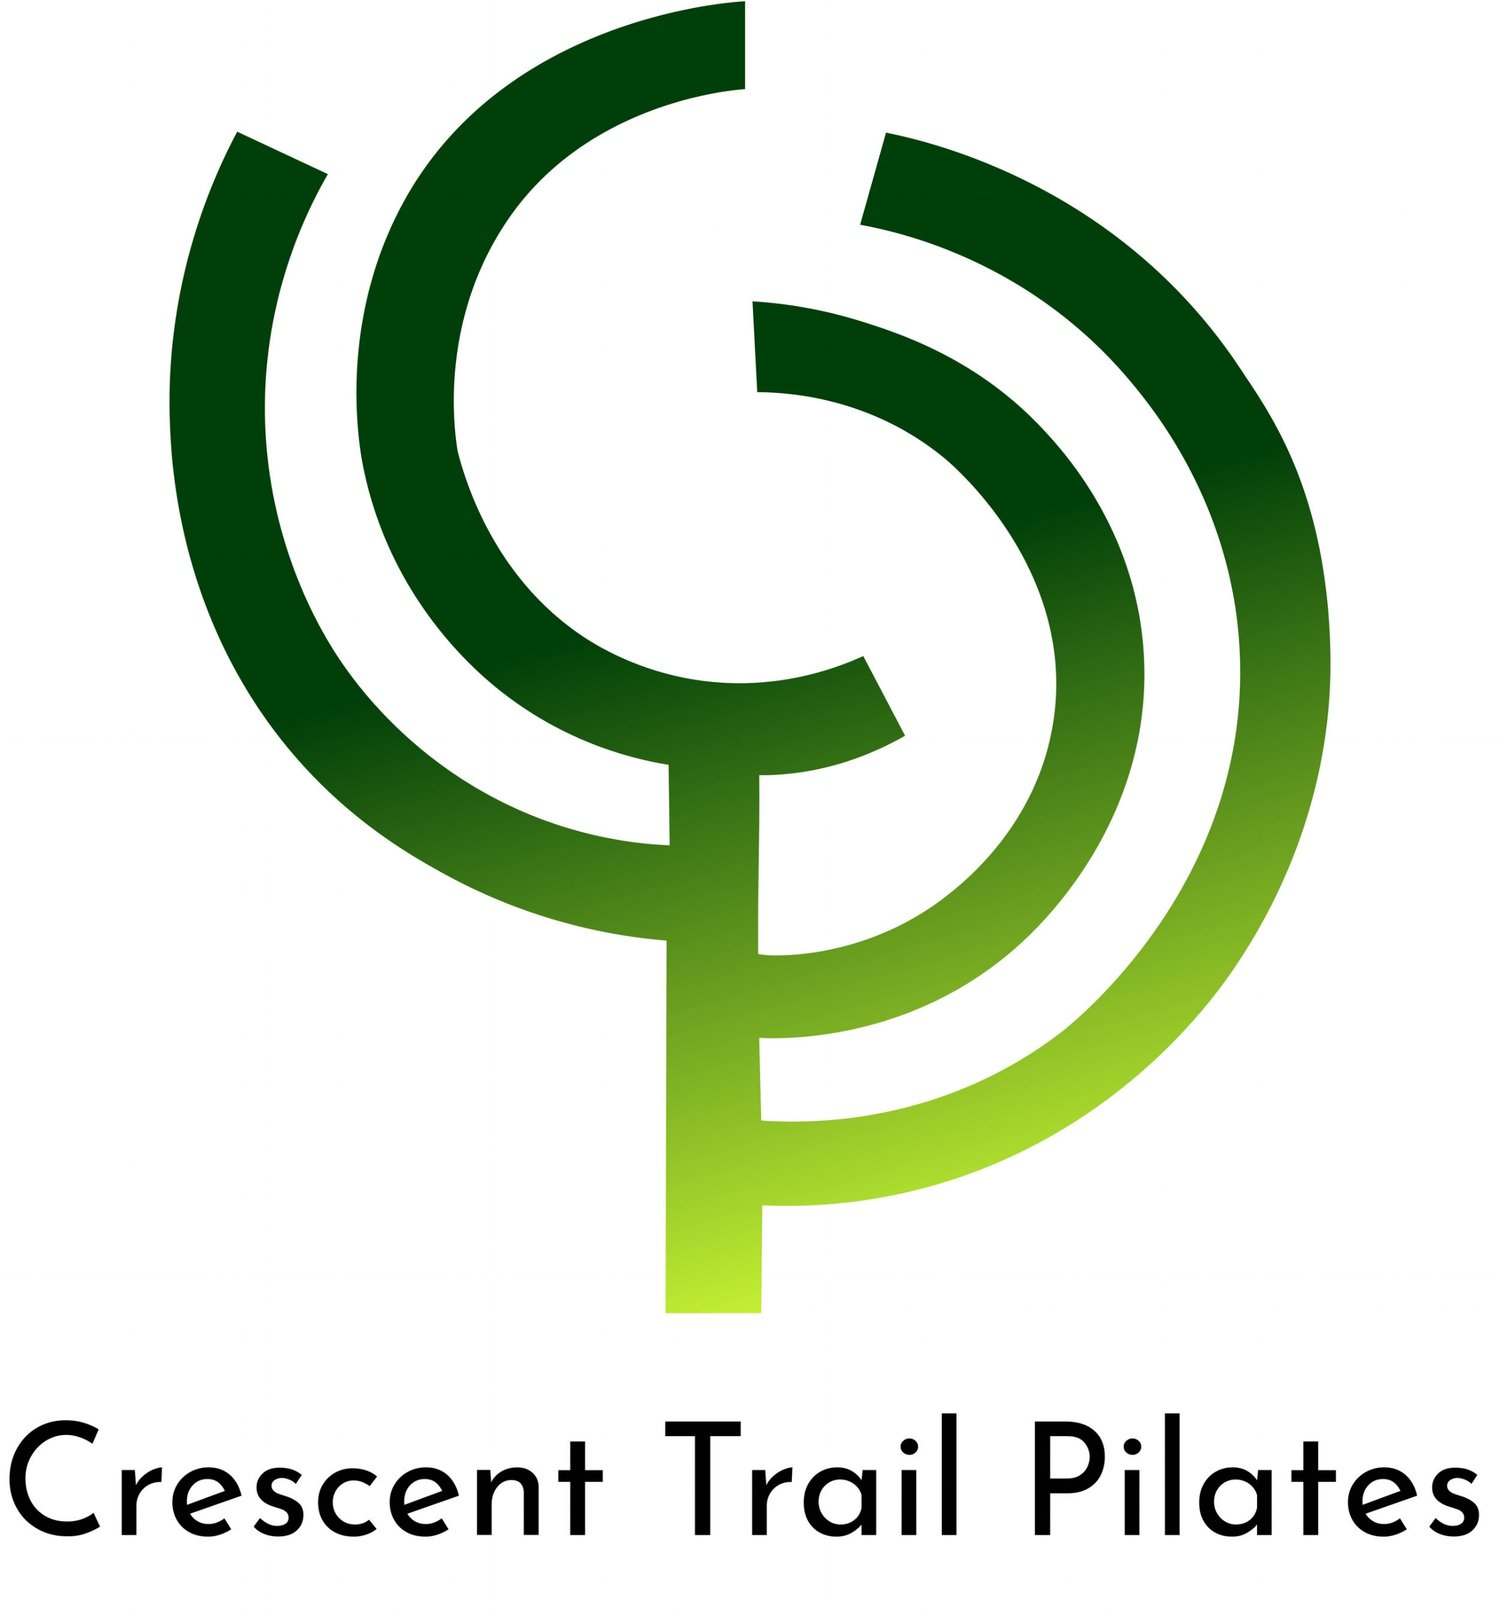 Crescent Trail Pilates